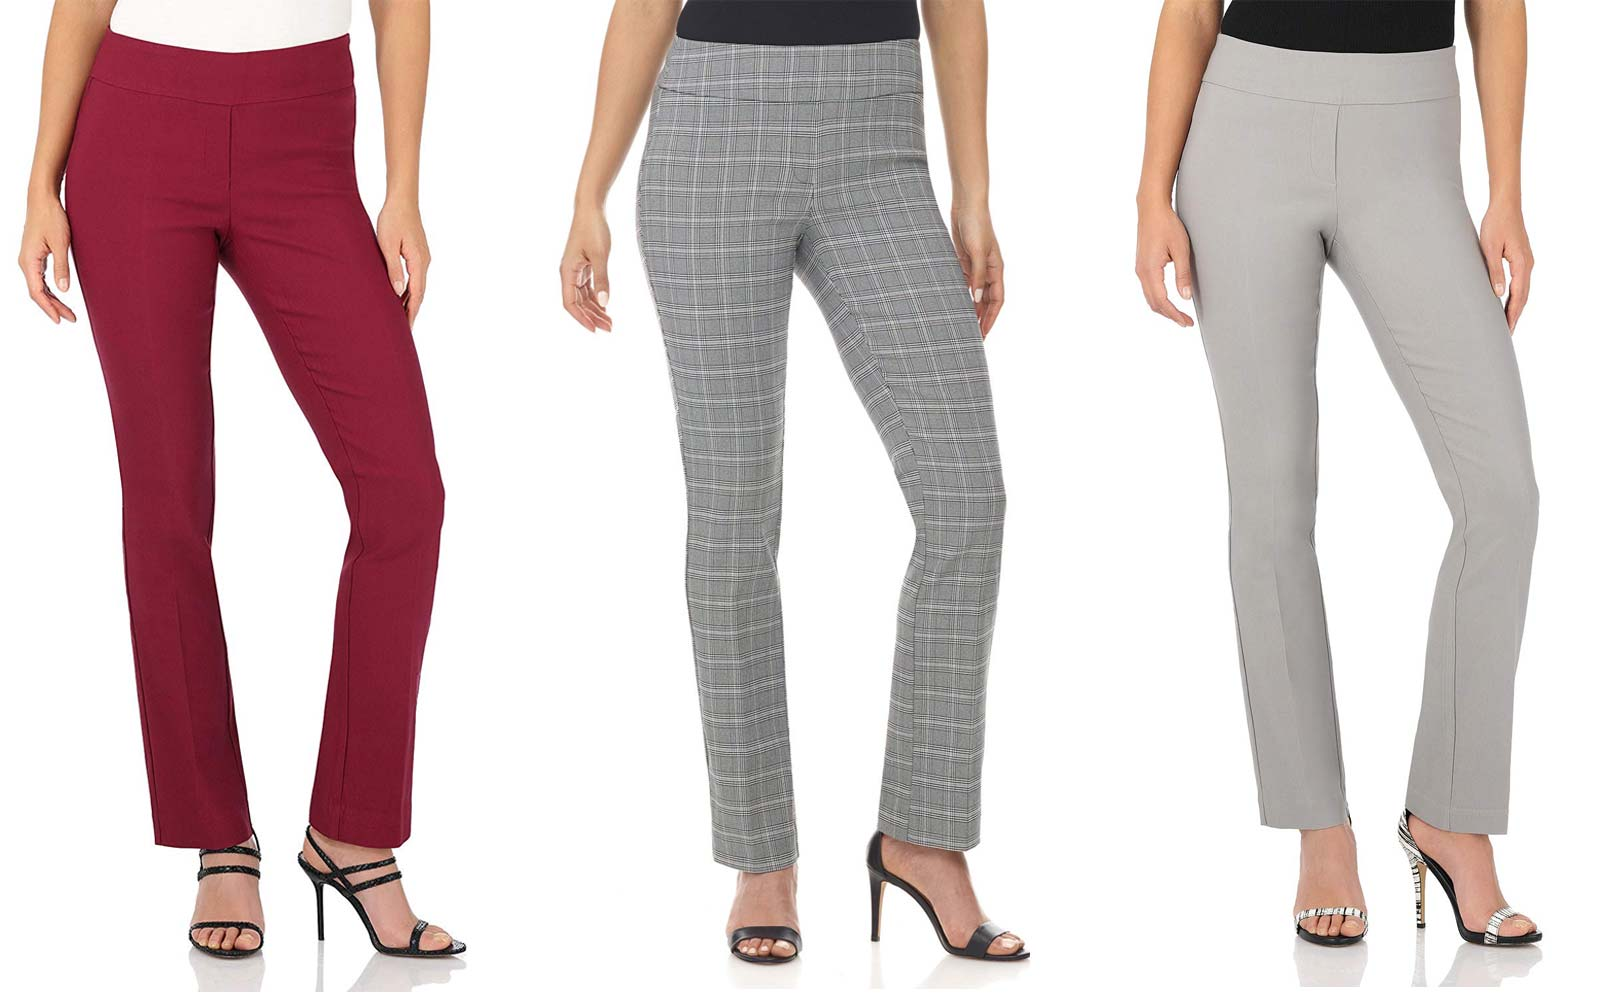 Amazon Customers Are Raving About These Work Slacks That Feel Like Yoga Pants — and They're Only $35